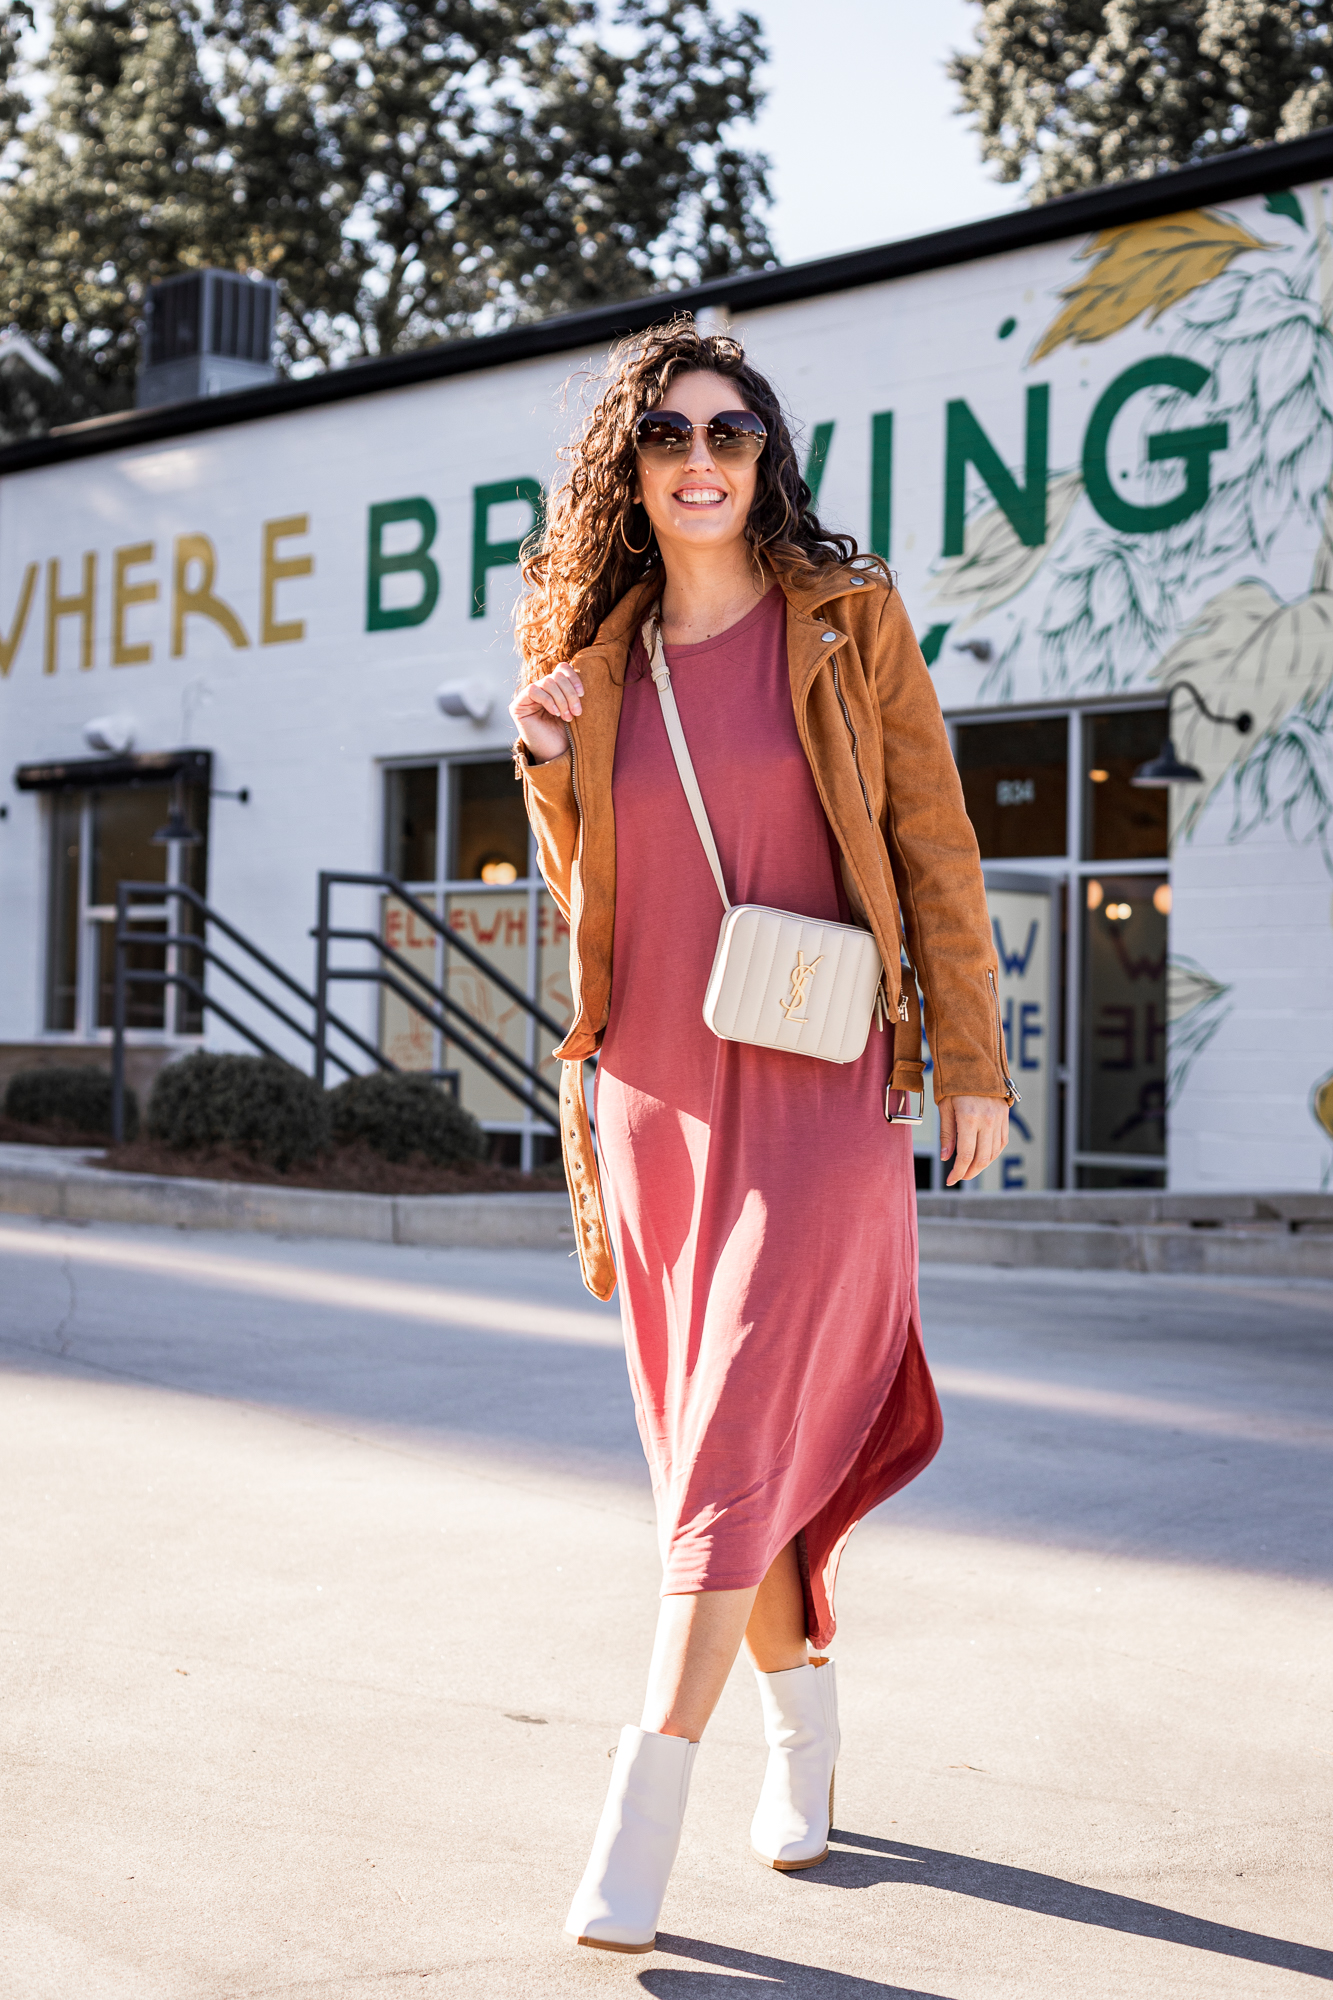 elsewhere brewing grant park atlanta, breweries in atlanta, casual outfit ideas, fall outfits, comfy dresses that are cute, casual style, local breweries